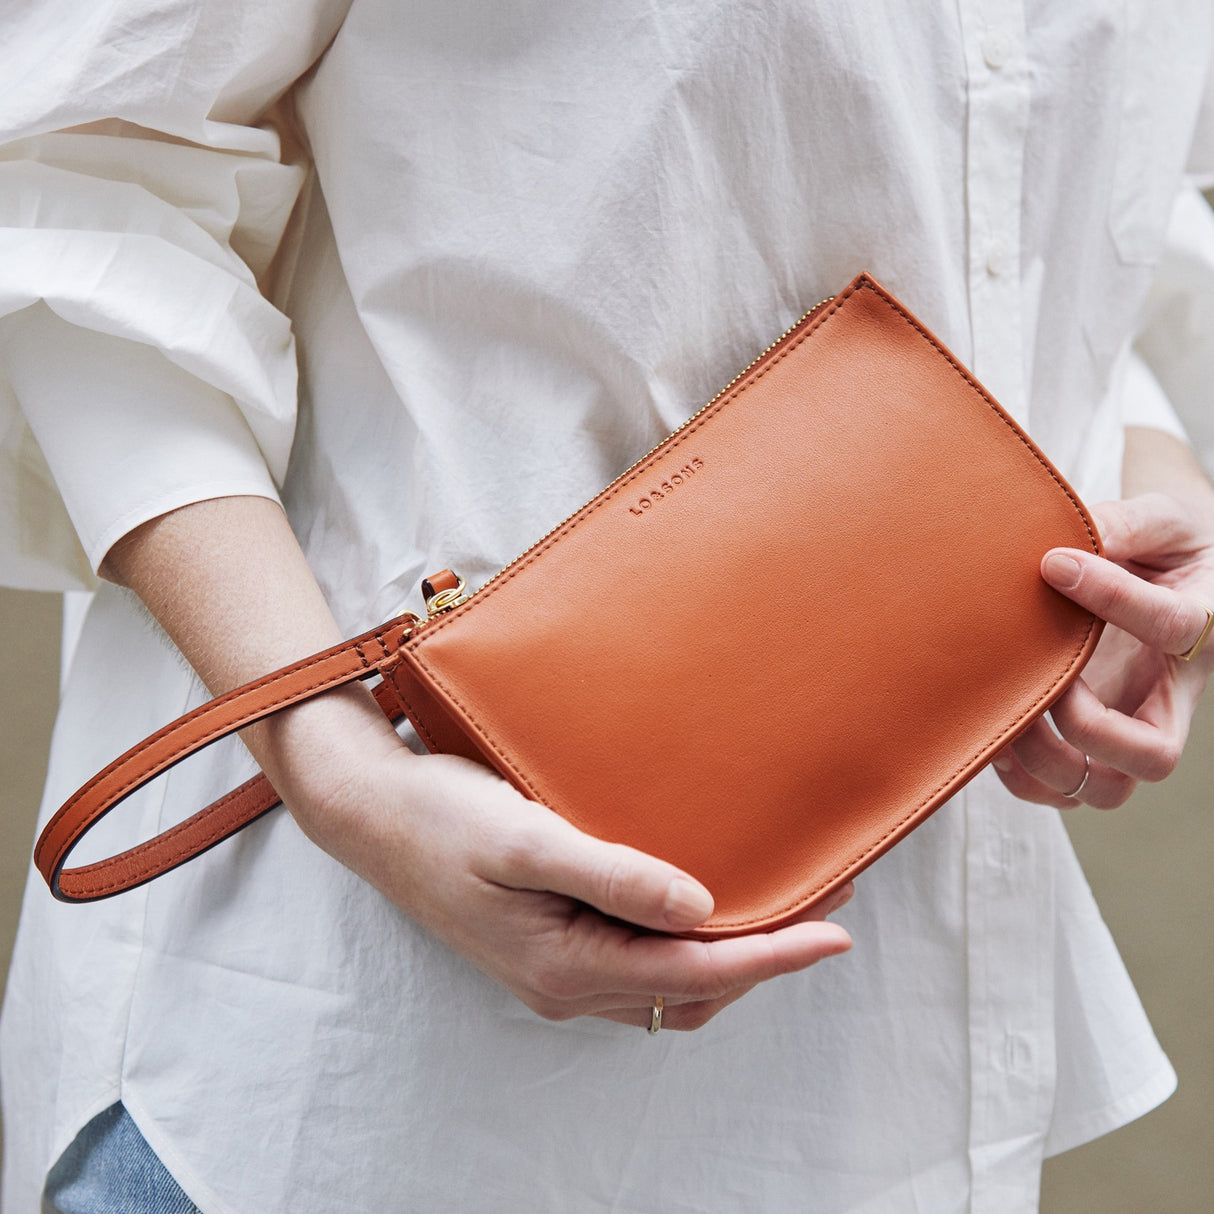 Casual Wristlet - The Waverley 2 - Nappa Leather - Sienna / Gold / Camel - Crossbody - Lo & Sons